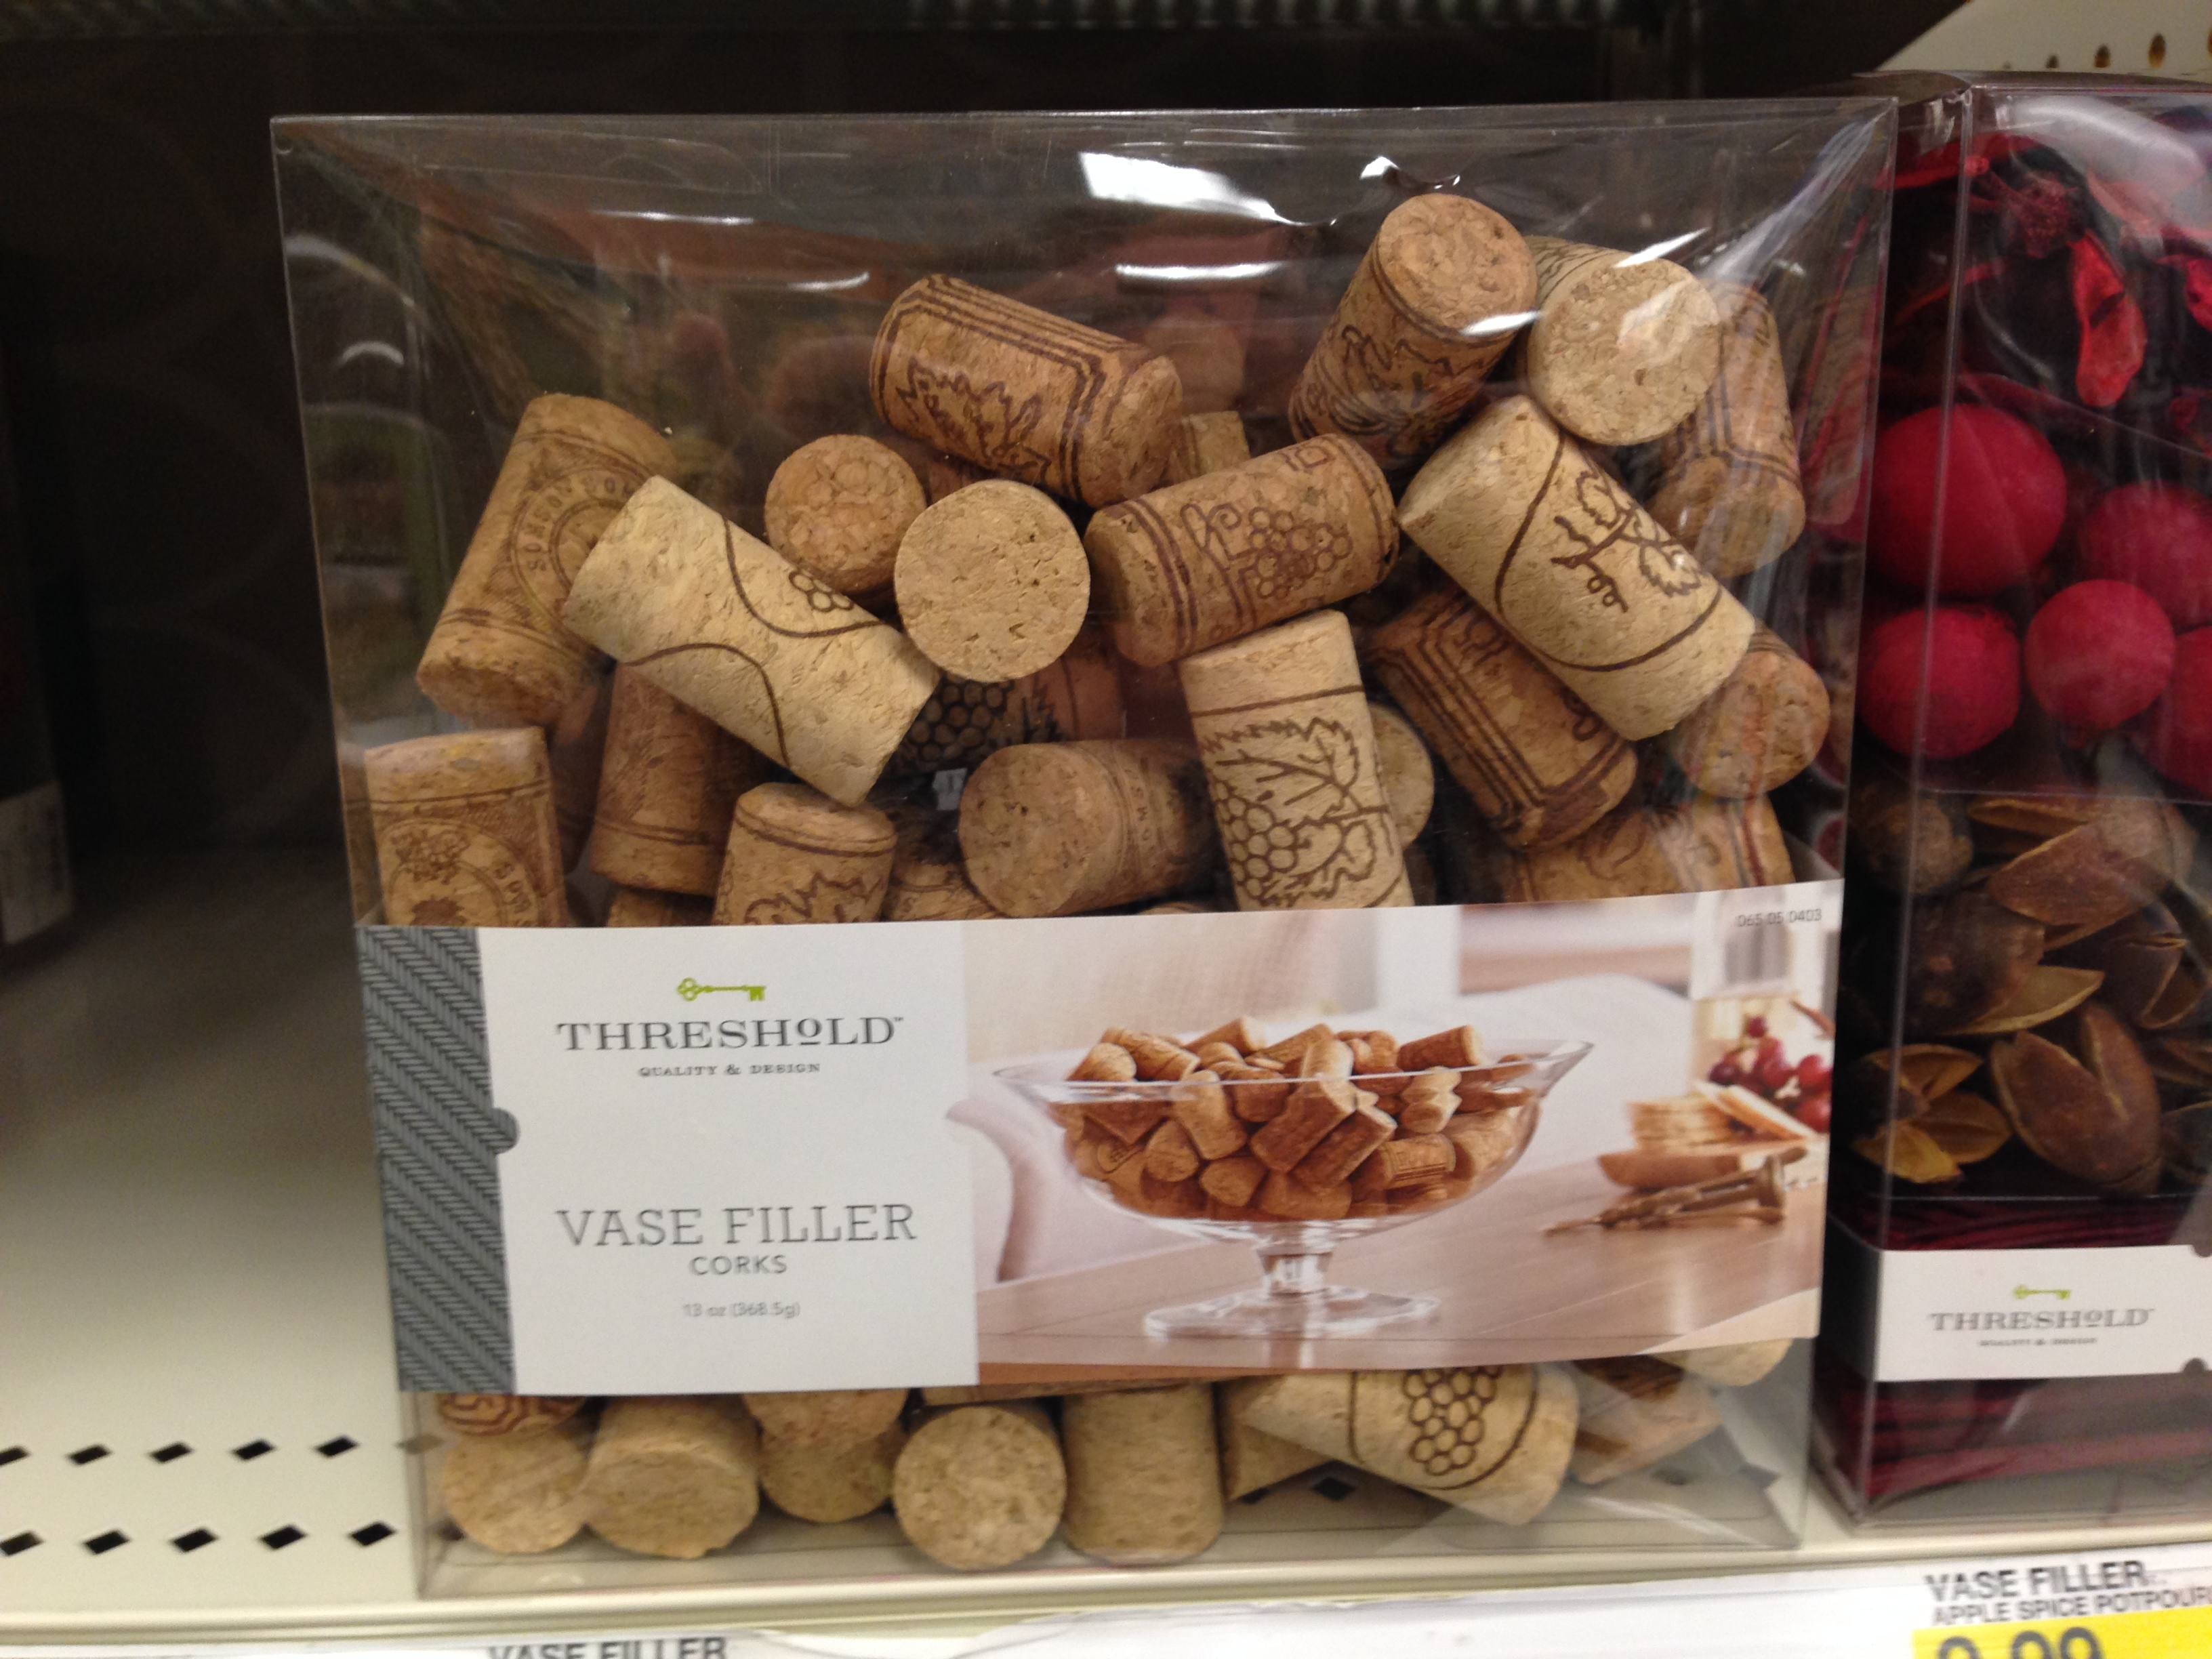 The mystery of the vase filler corks got my reservations gotmyreservations vase filler reviewsmspy